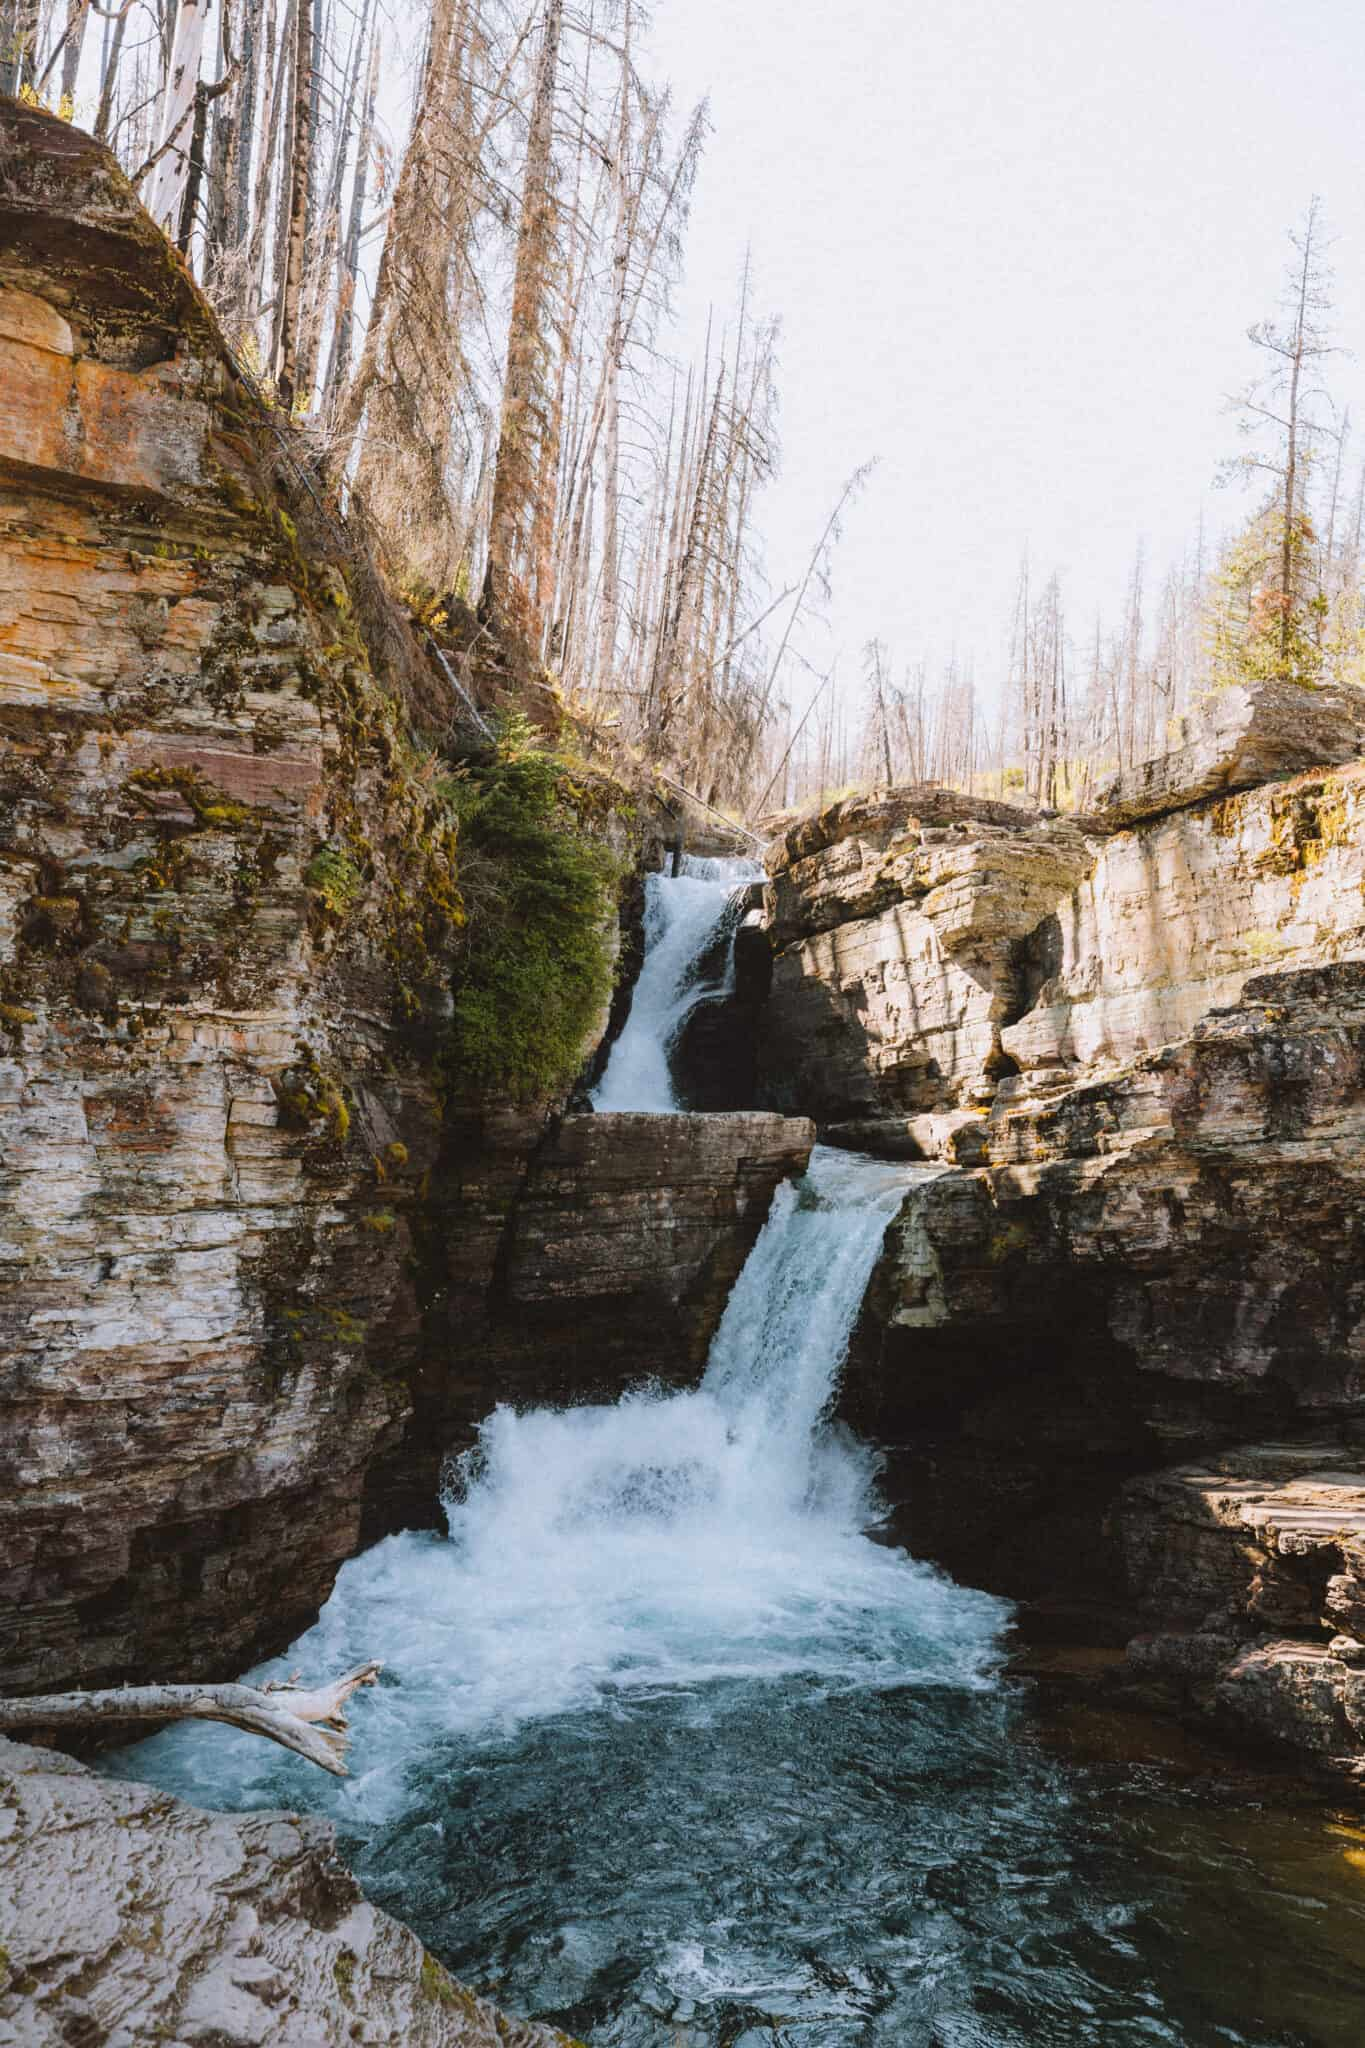 View of St Mary Falls in Glacier National Park